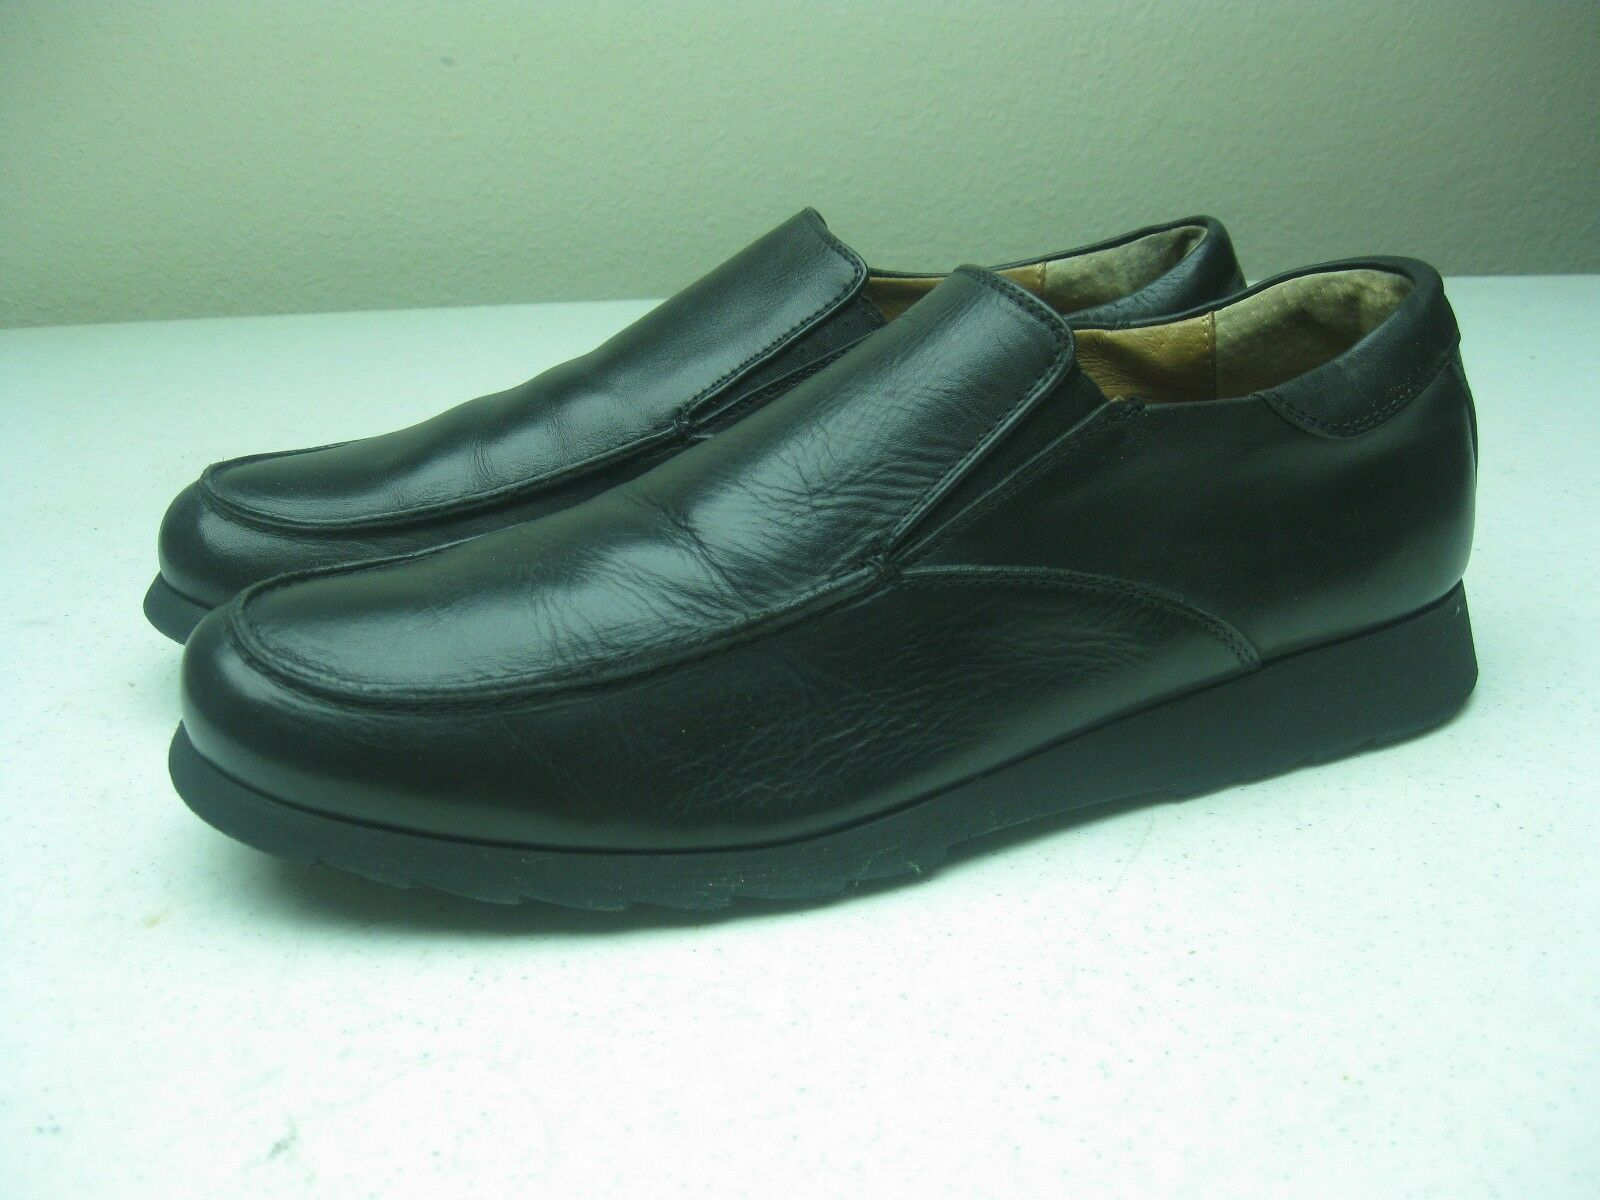 BLACK KENNETH COLE MADE IN ITALY SIZE 42/9 SLIP ON LOAFER